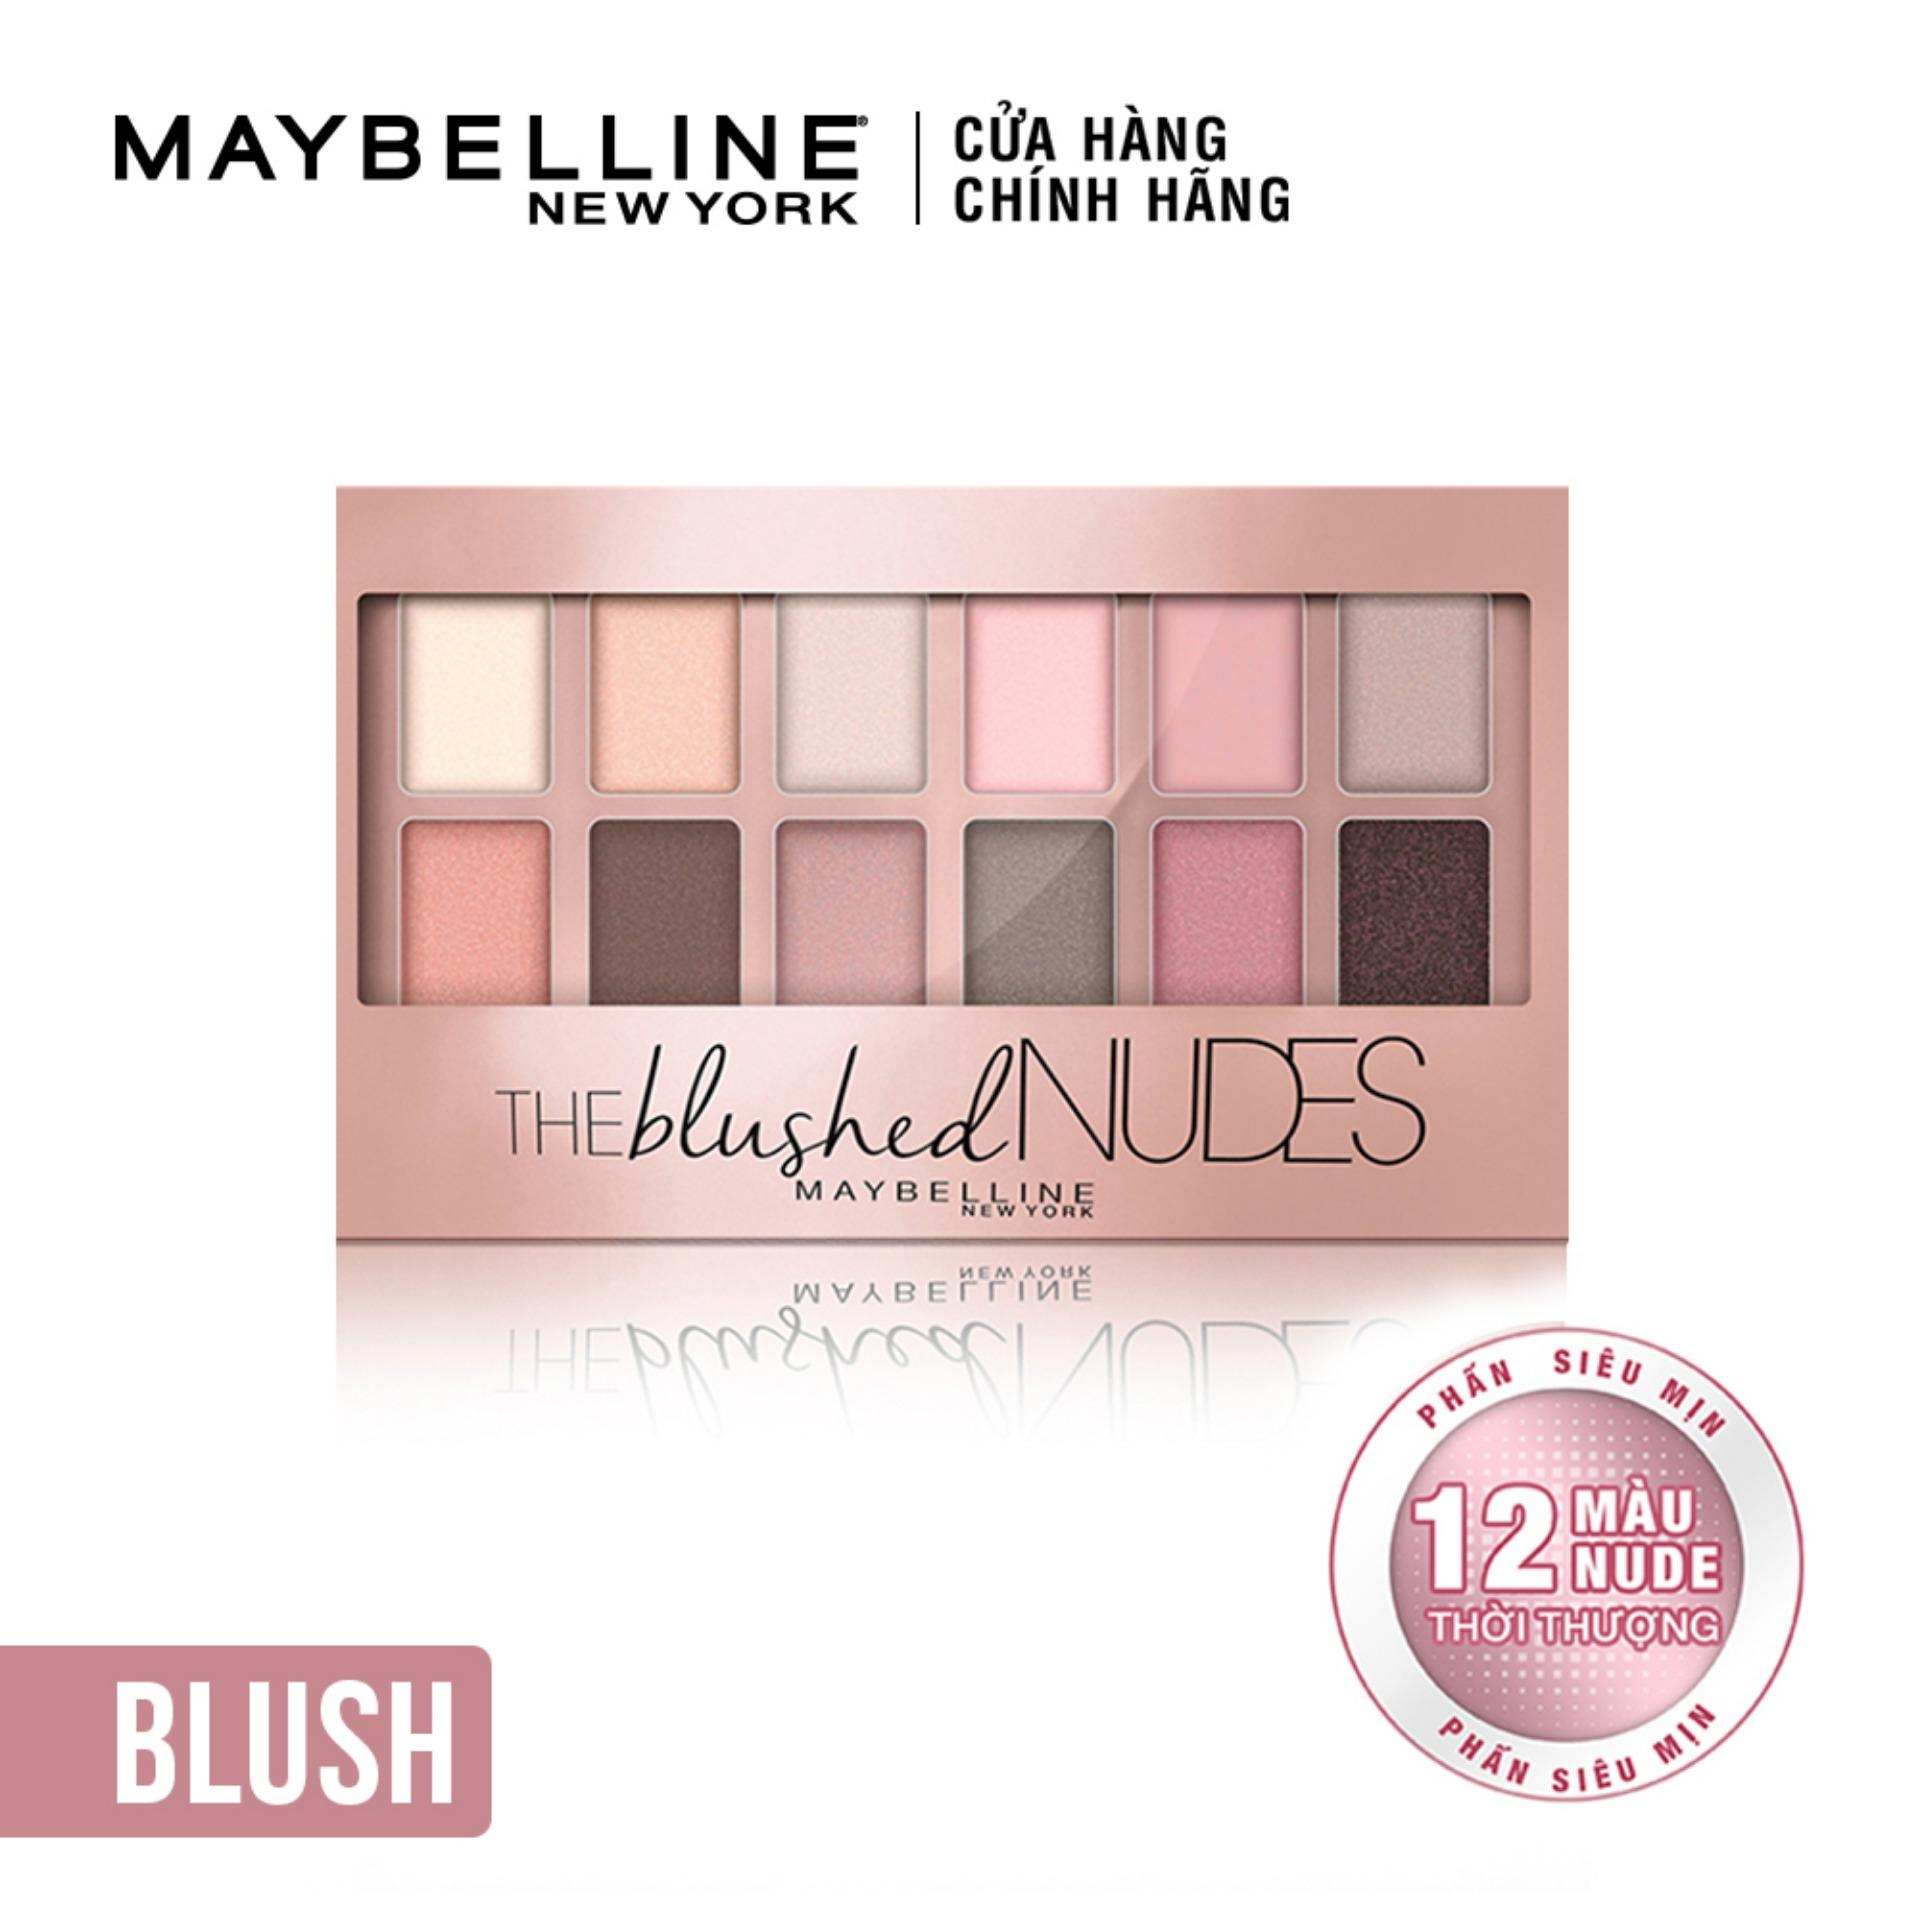 Bảng phấn mắt Maybelline New York The Nudes Palette 12 màu 9g